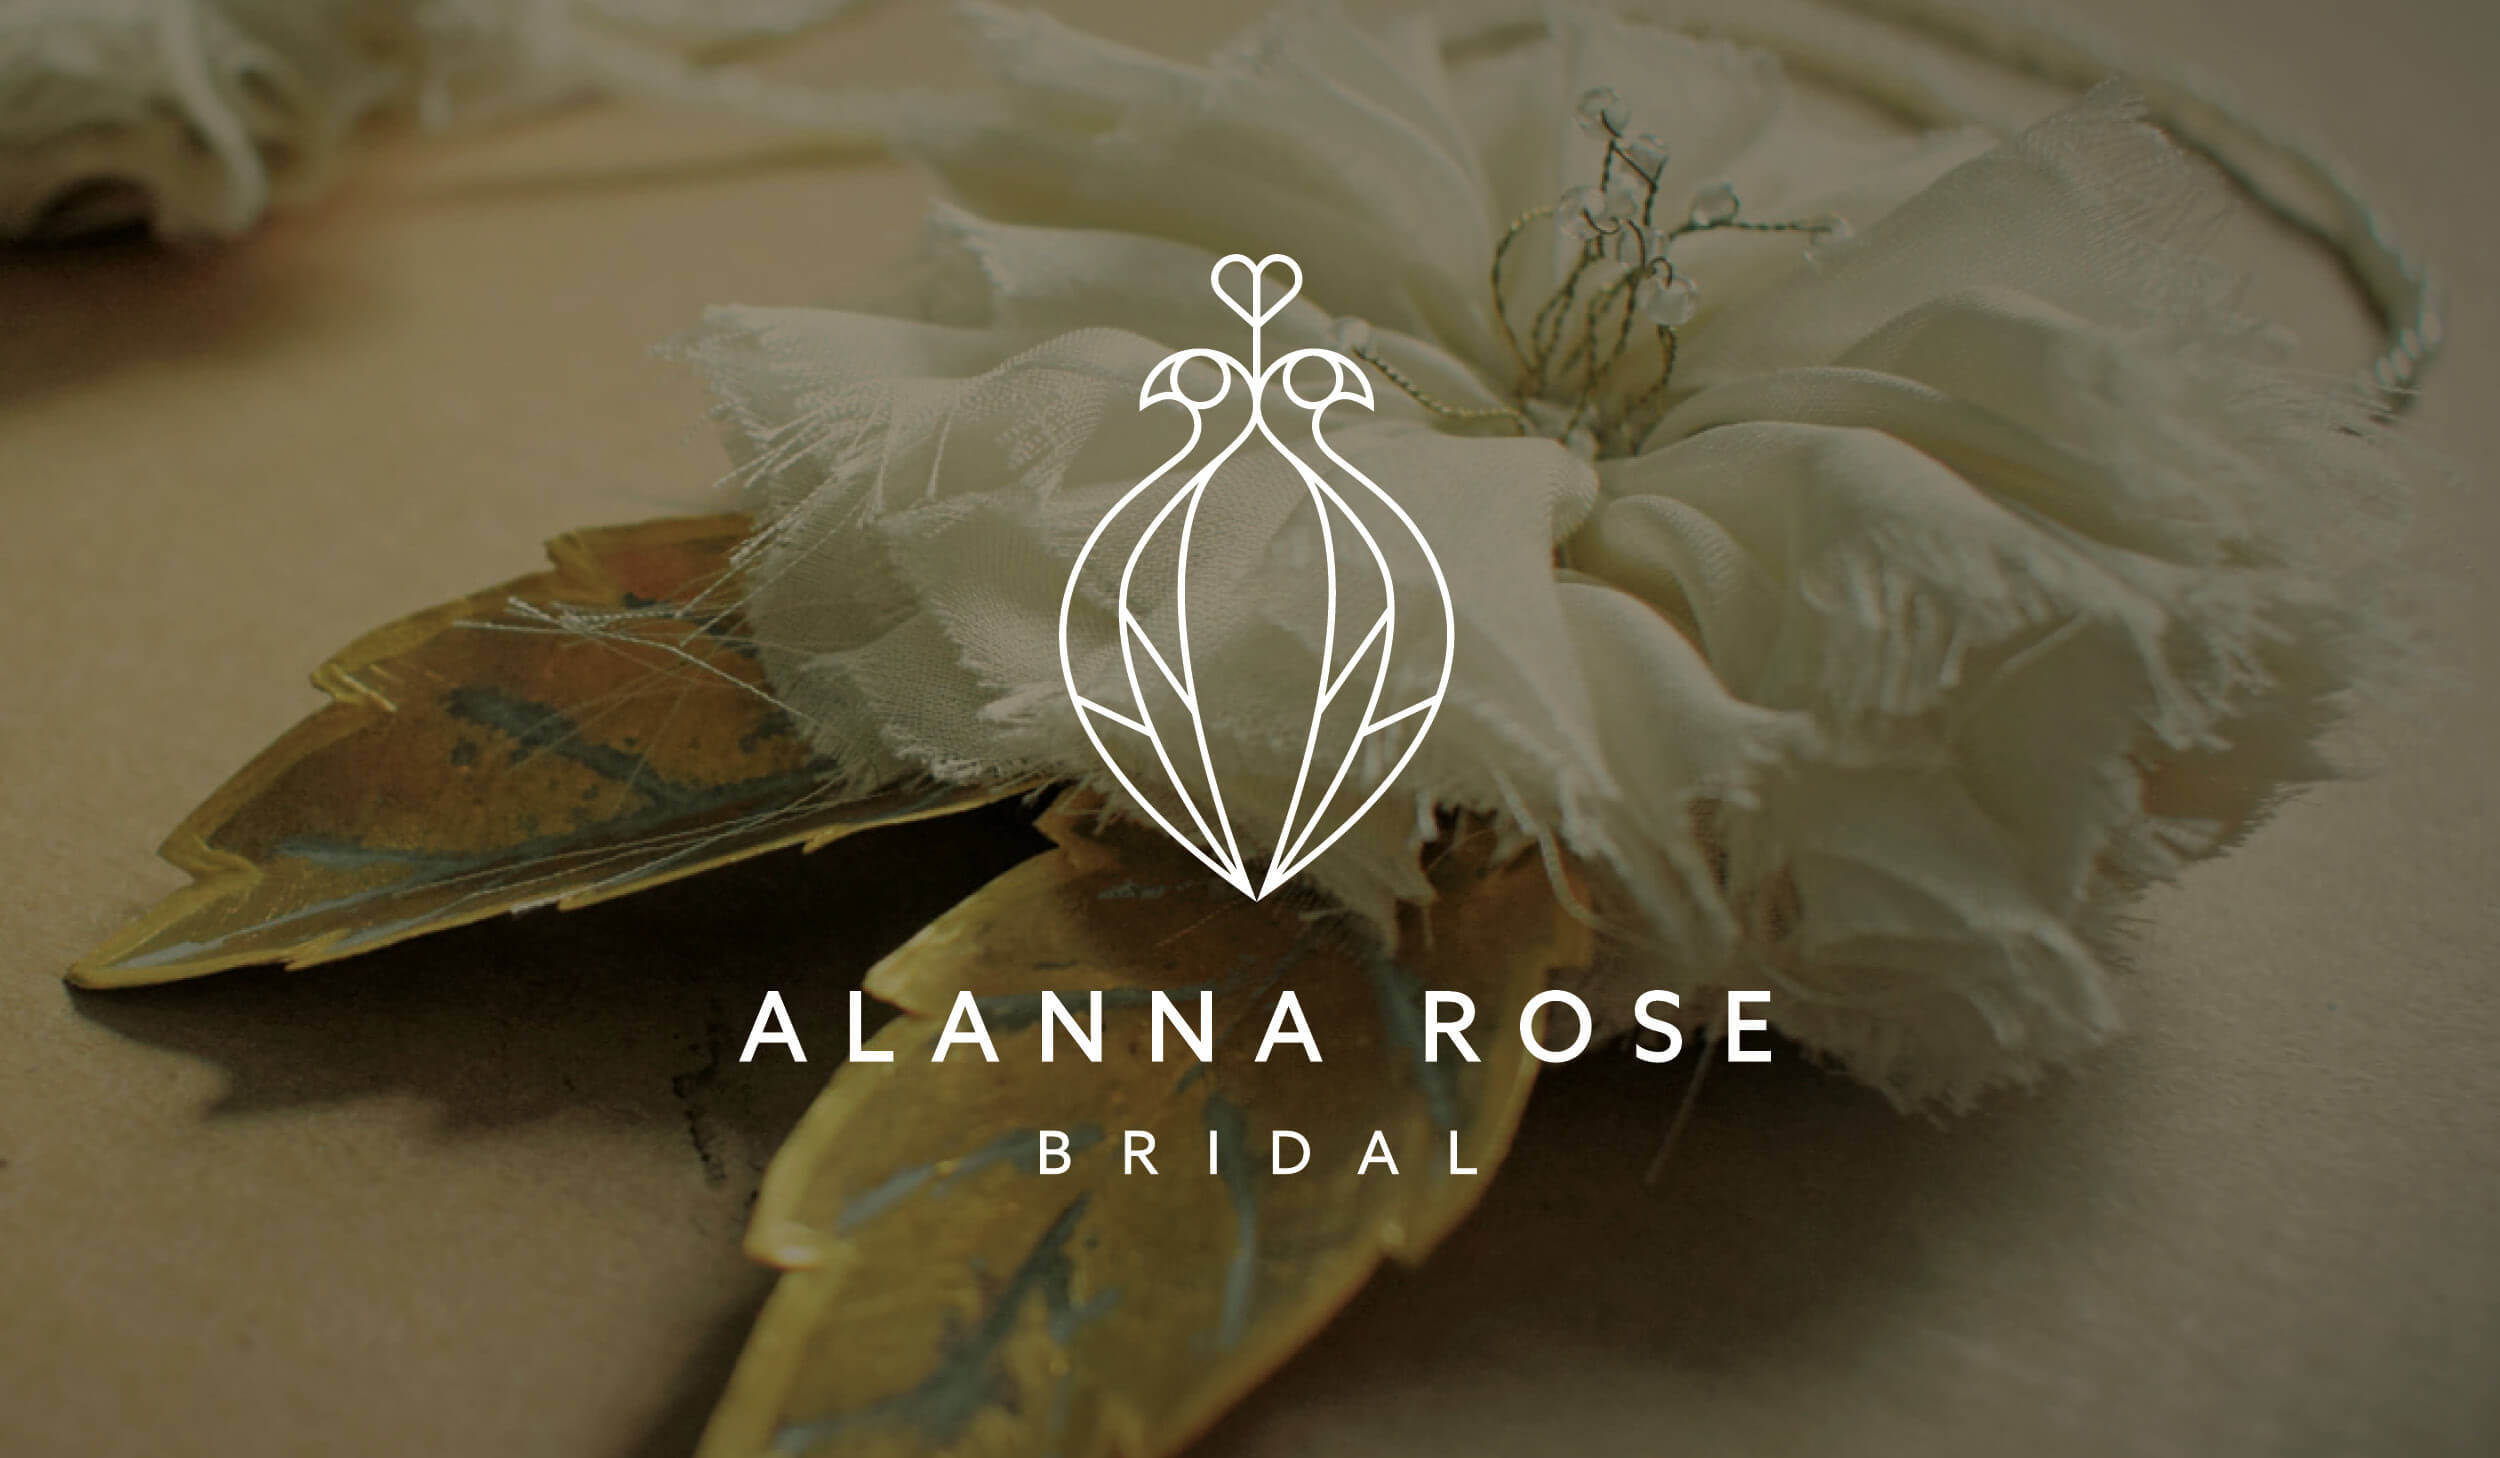 Alanna Rose Bridal